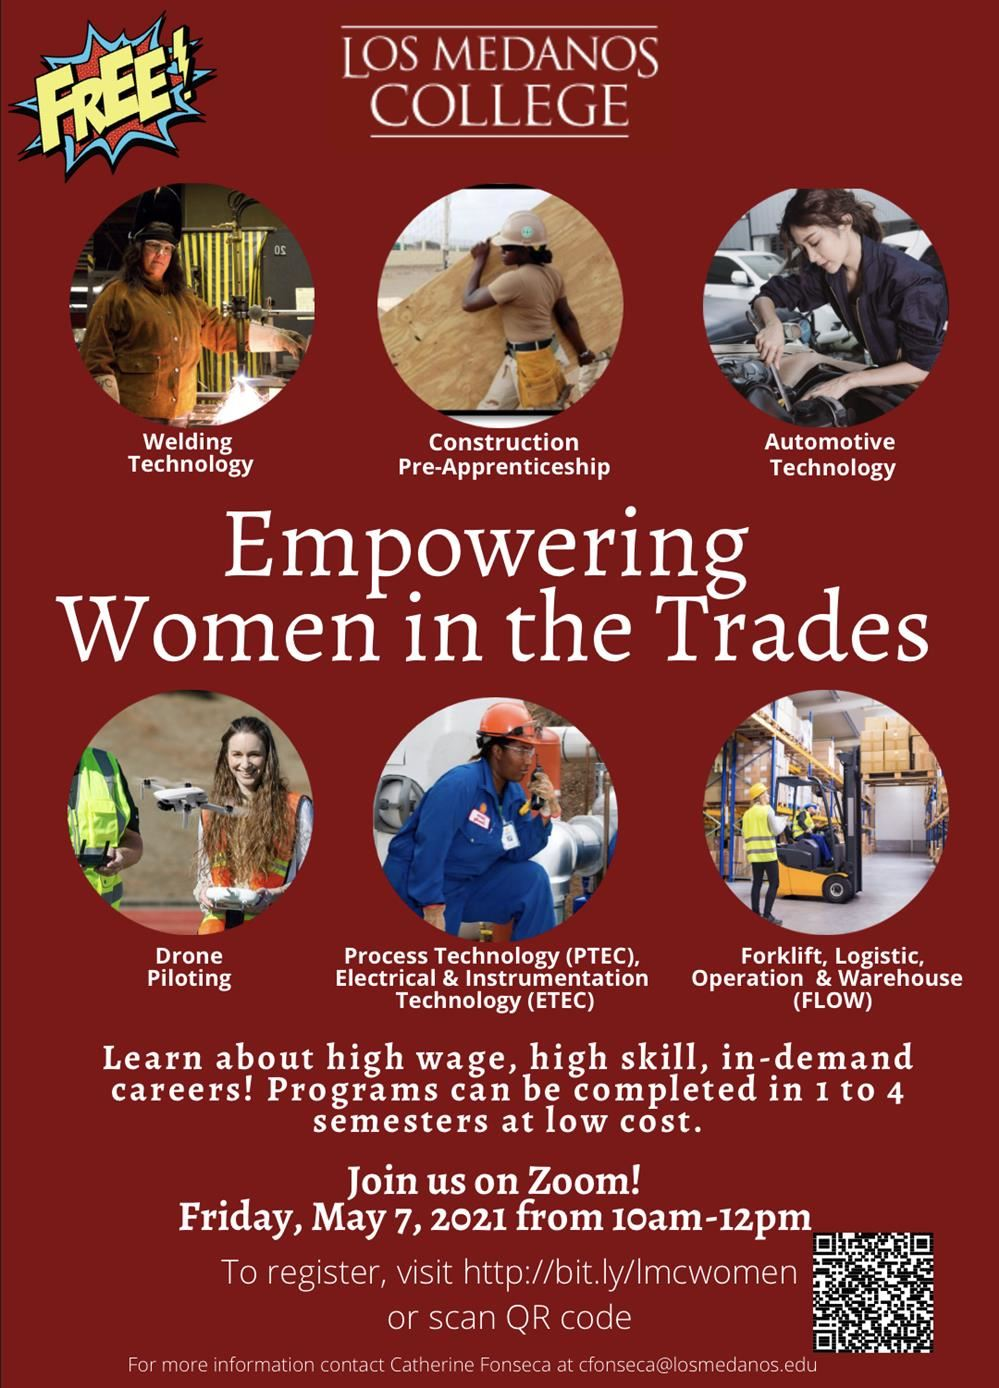 Empowering Women in the Trades